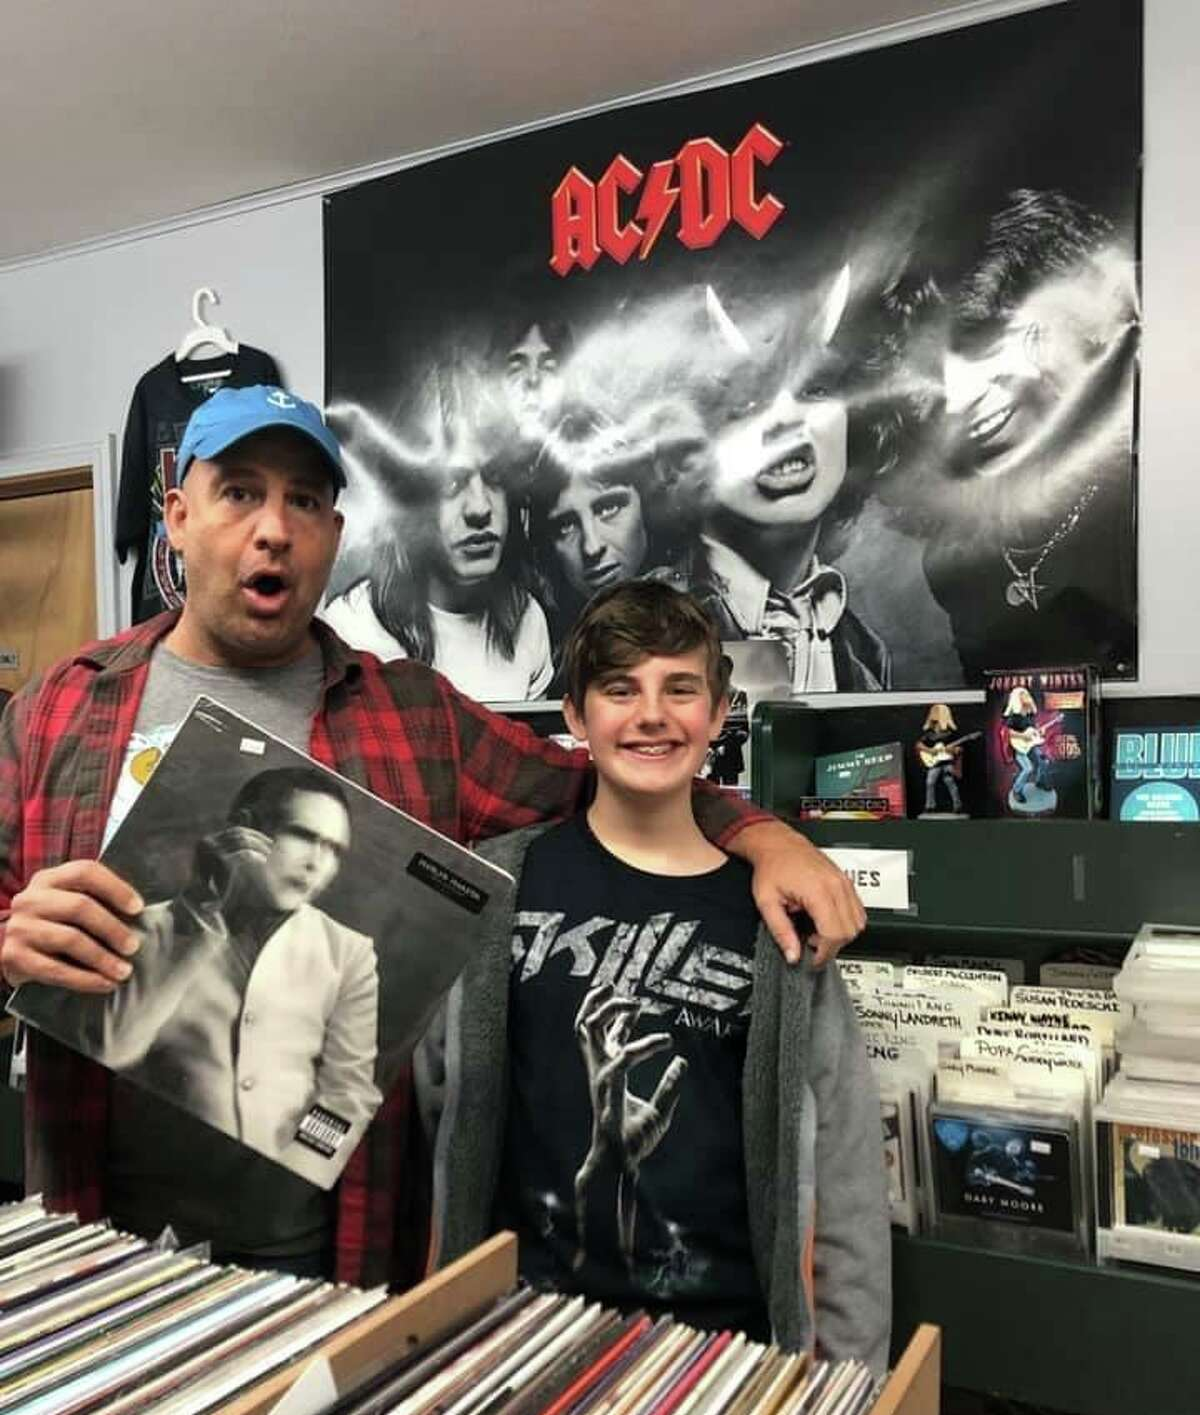 Vinnie Penn and son riding the vinyl wave at Exile on Main Street in Branford. Vinyl has been back for a while, but for this writer, it never went away.